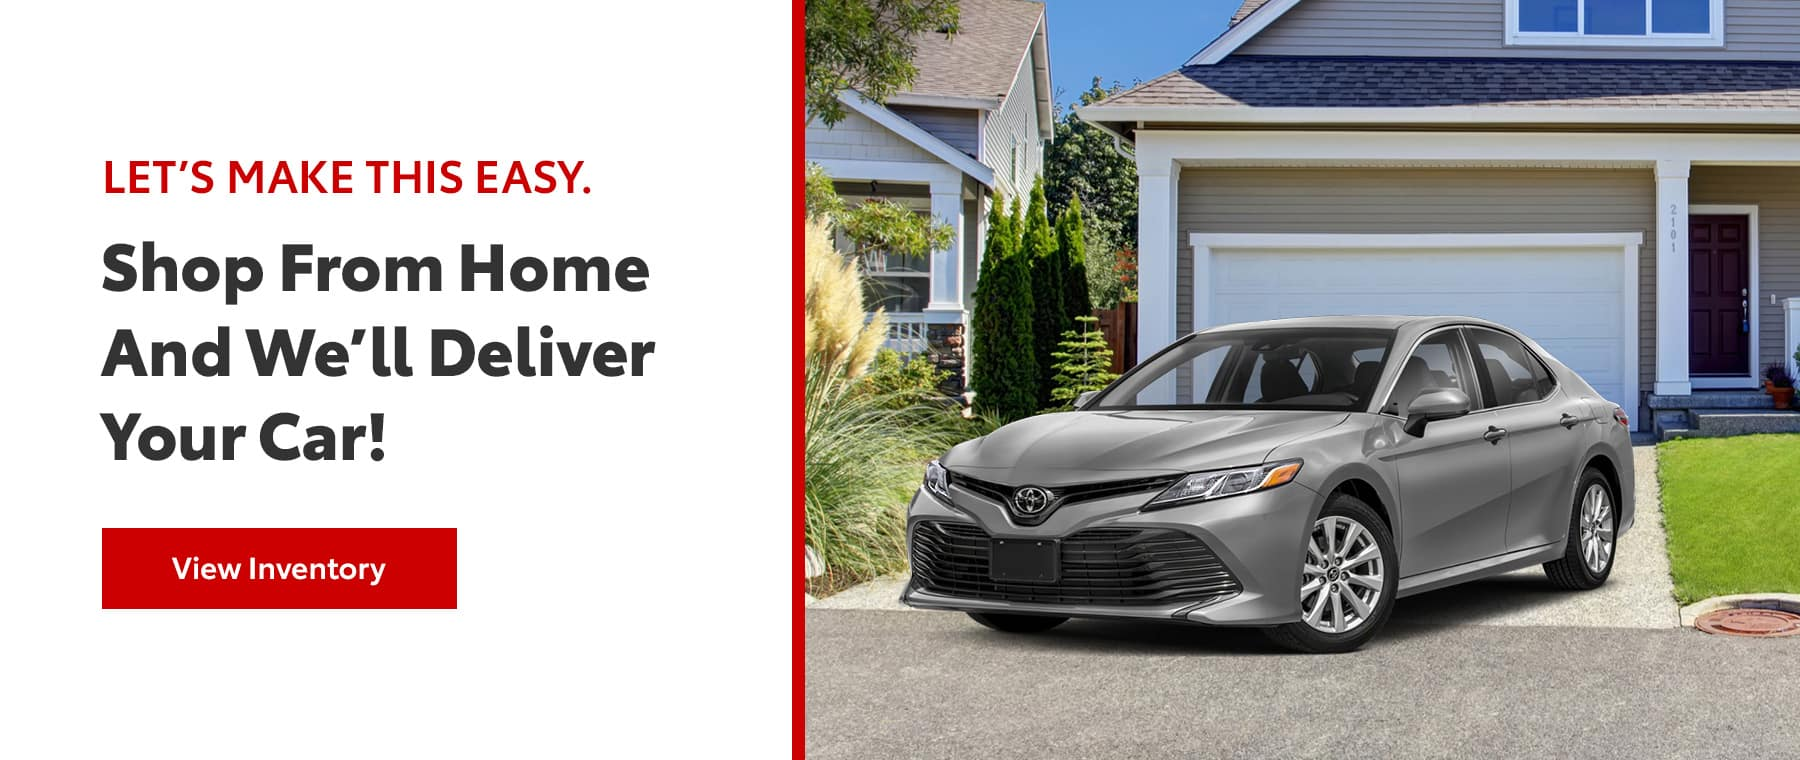 LET'S MAKE THIS EASY. SHOP FROM HOME AND WE'LL DELIVER YOUR CAR! VIEW INVENTORY